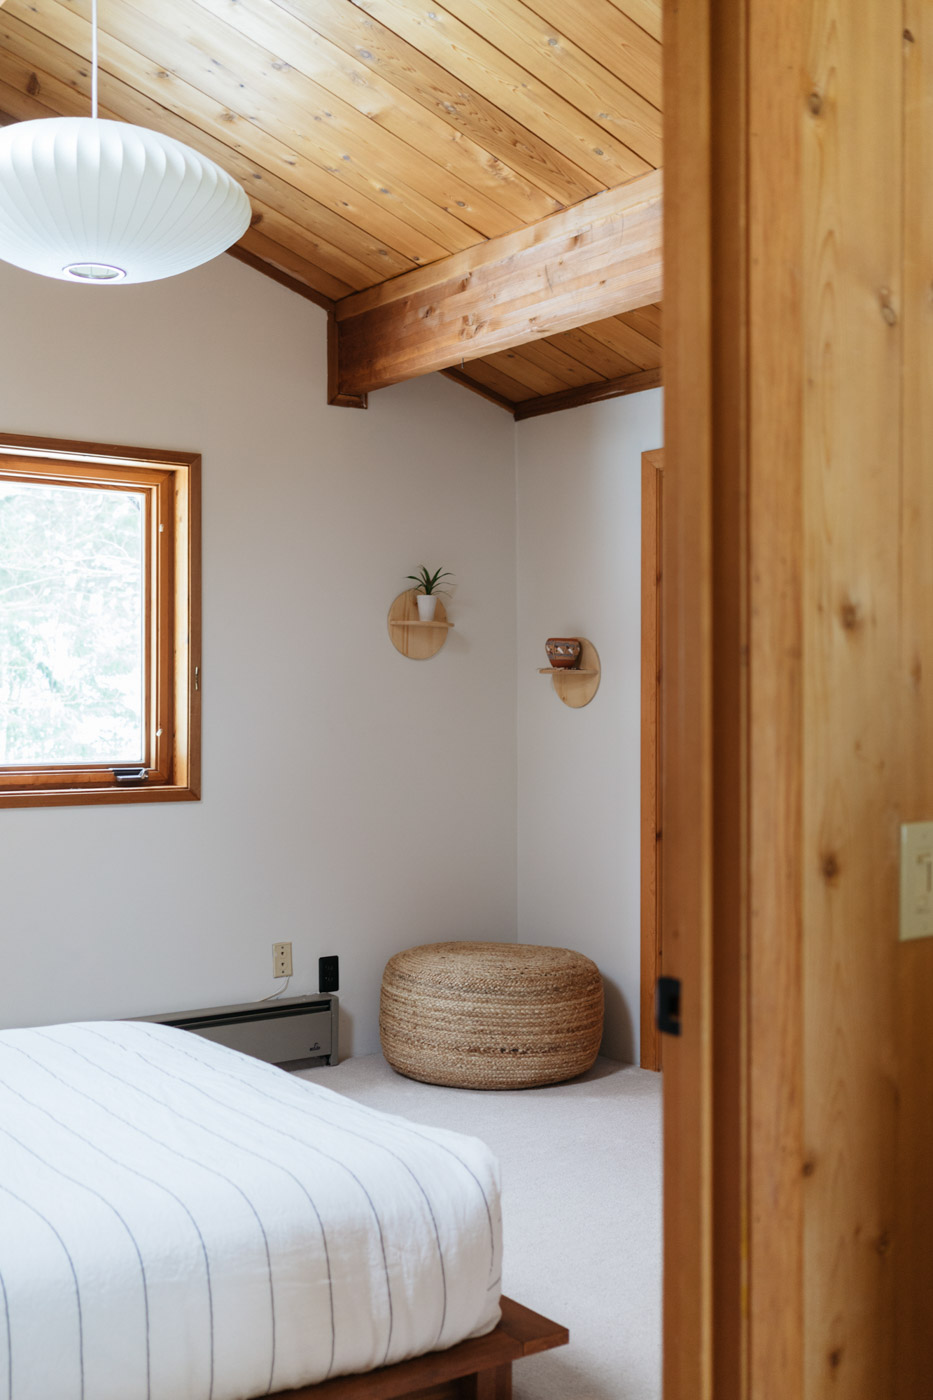 CabinGoals-WardsboroVT-natural-light-photography-studio-lifestyle-photoshoot-location-editorial-commercial-photography-15.jpg